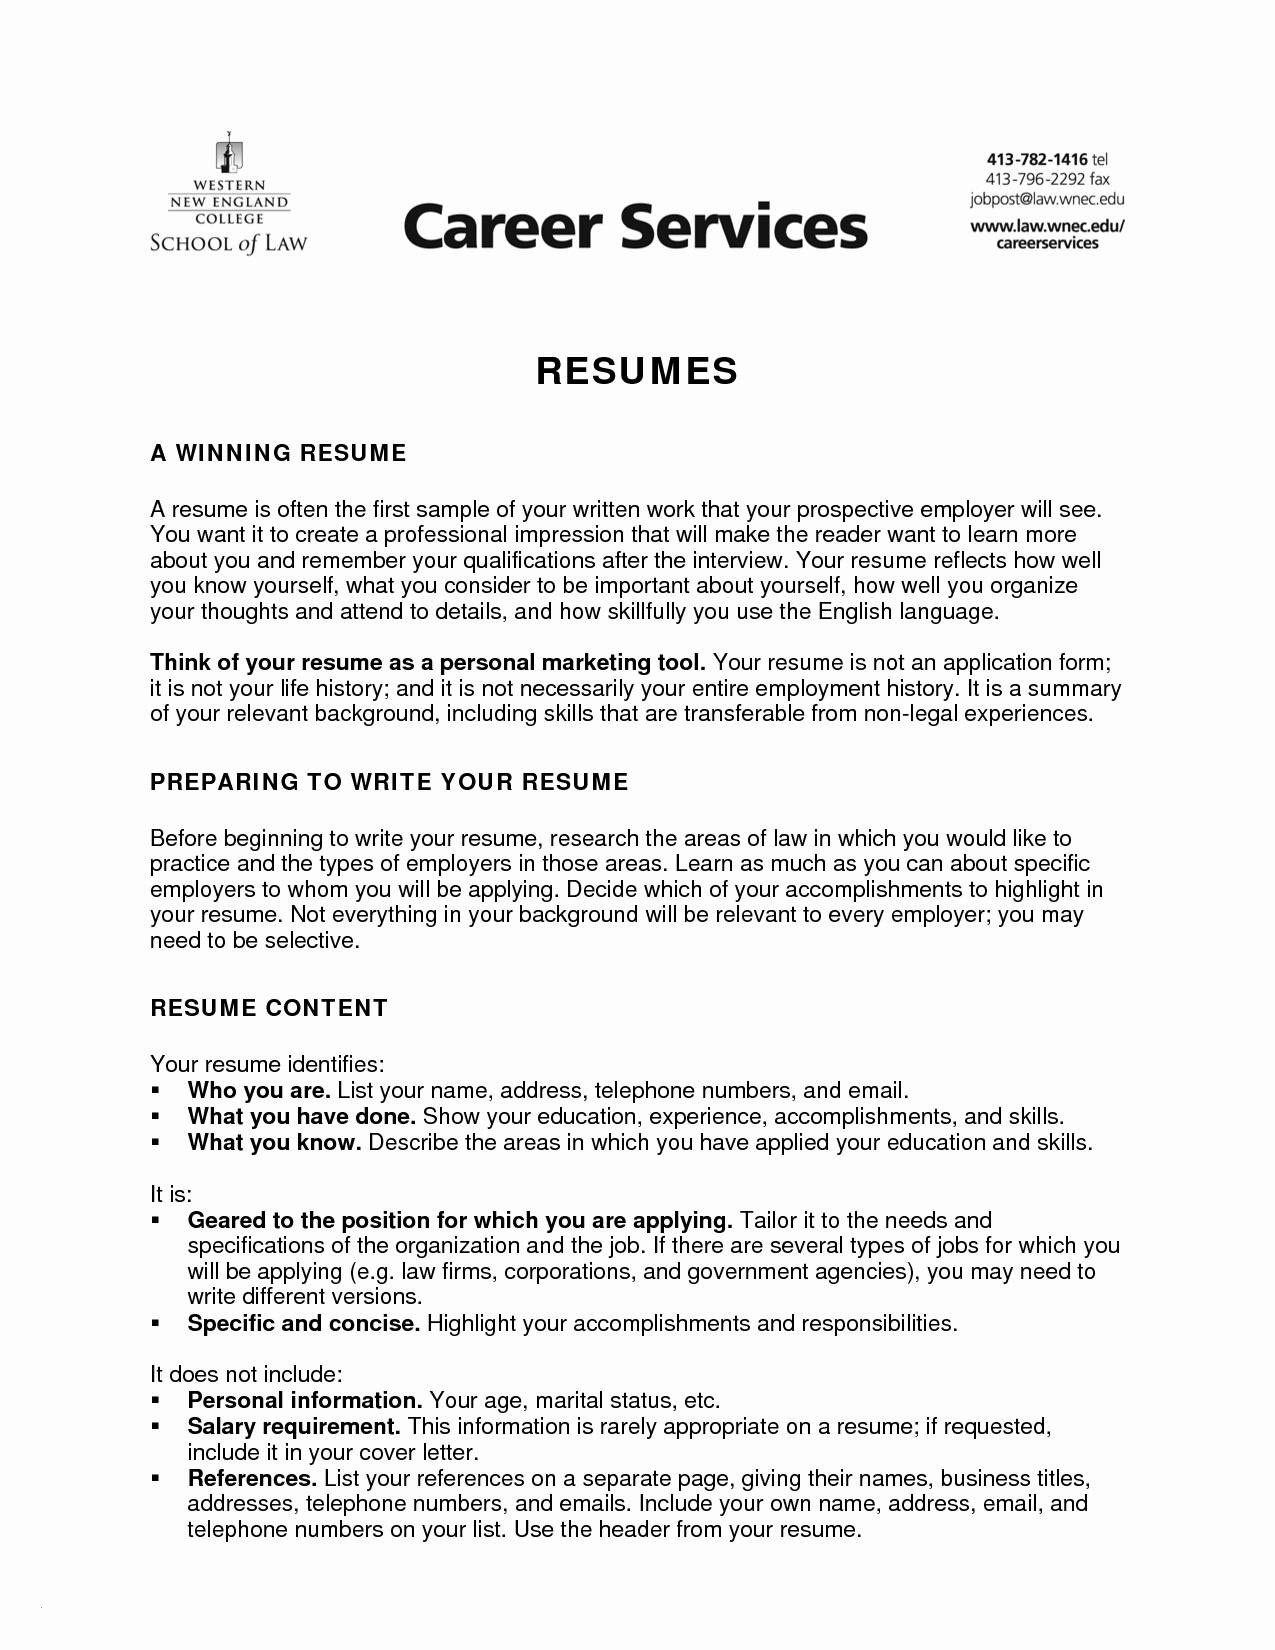 College Transfer Resume - Resume Template for College Application Fresh Should I Use A Resume